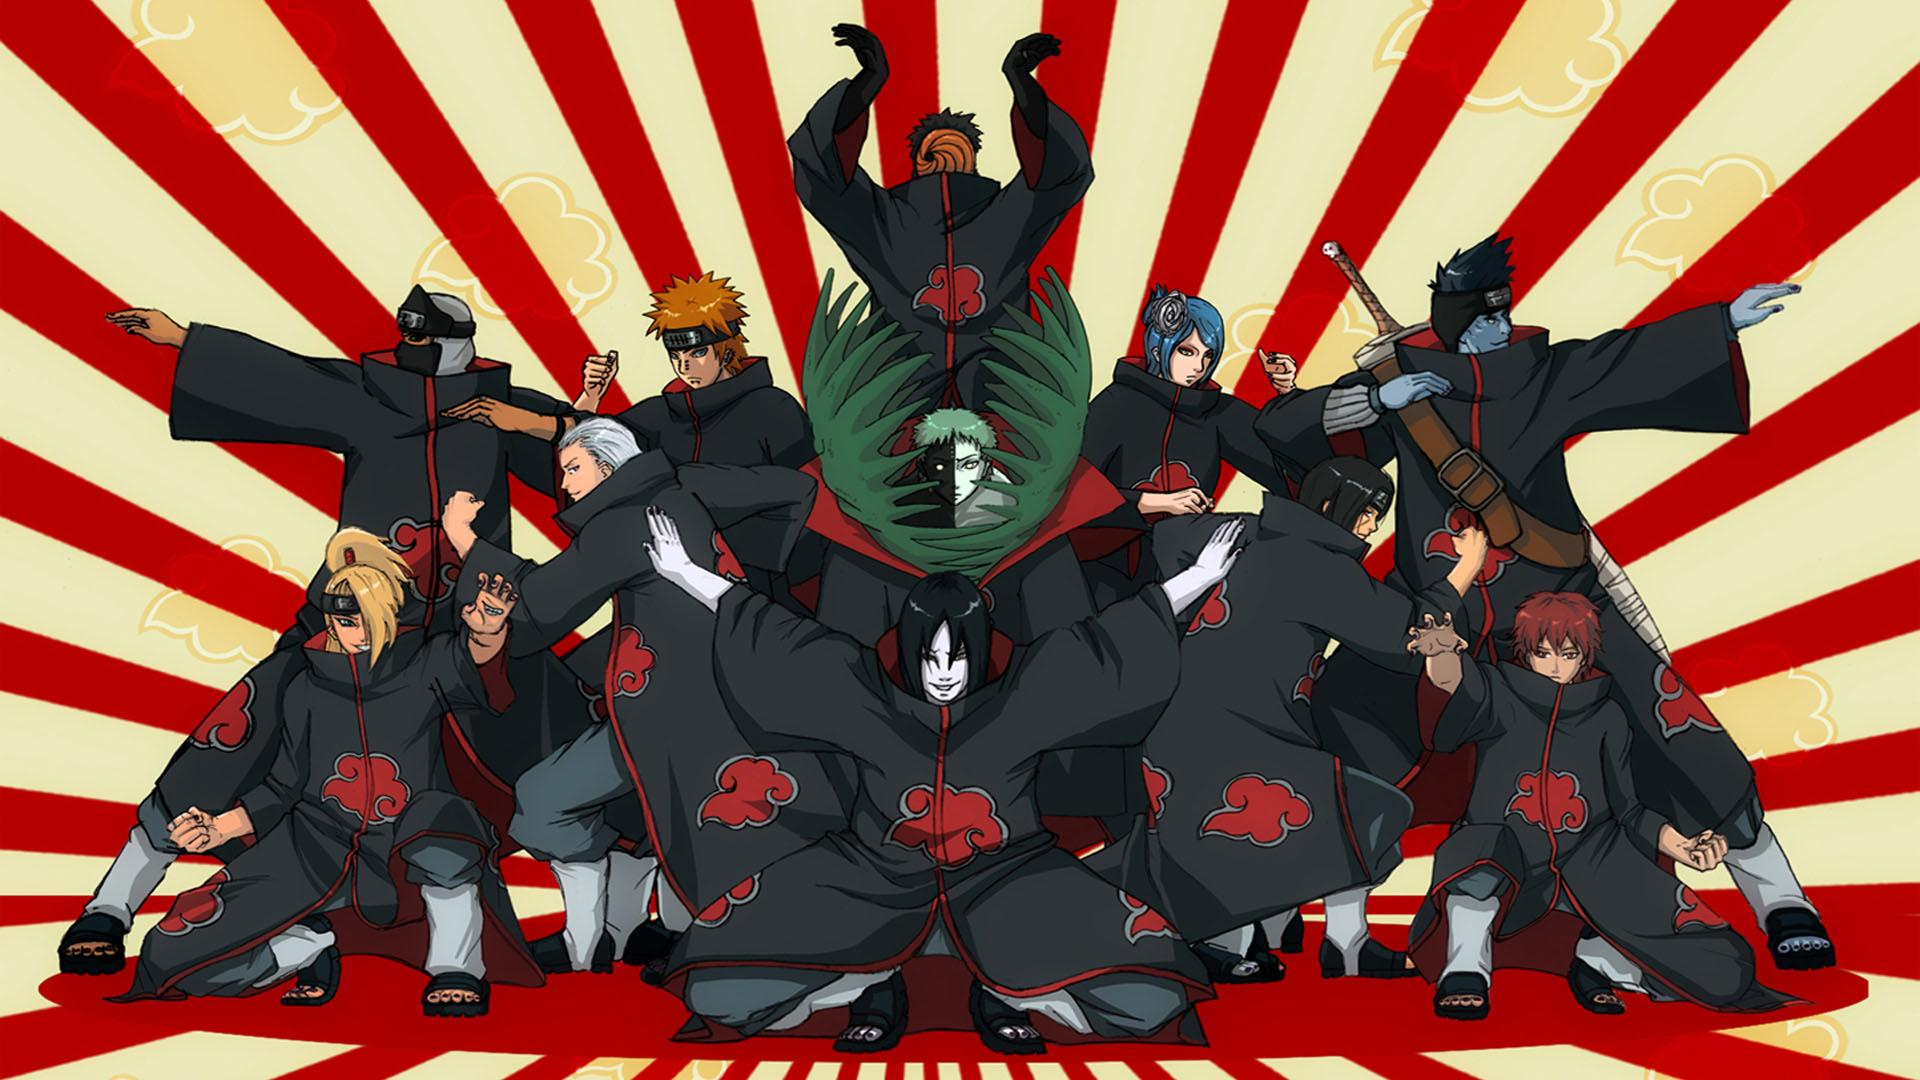 Akatsuki HD Wallpapers